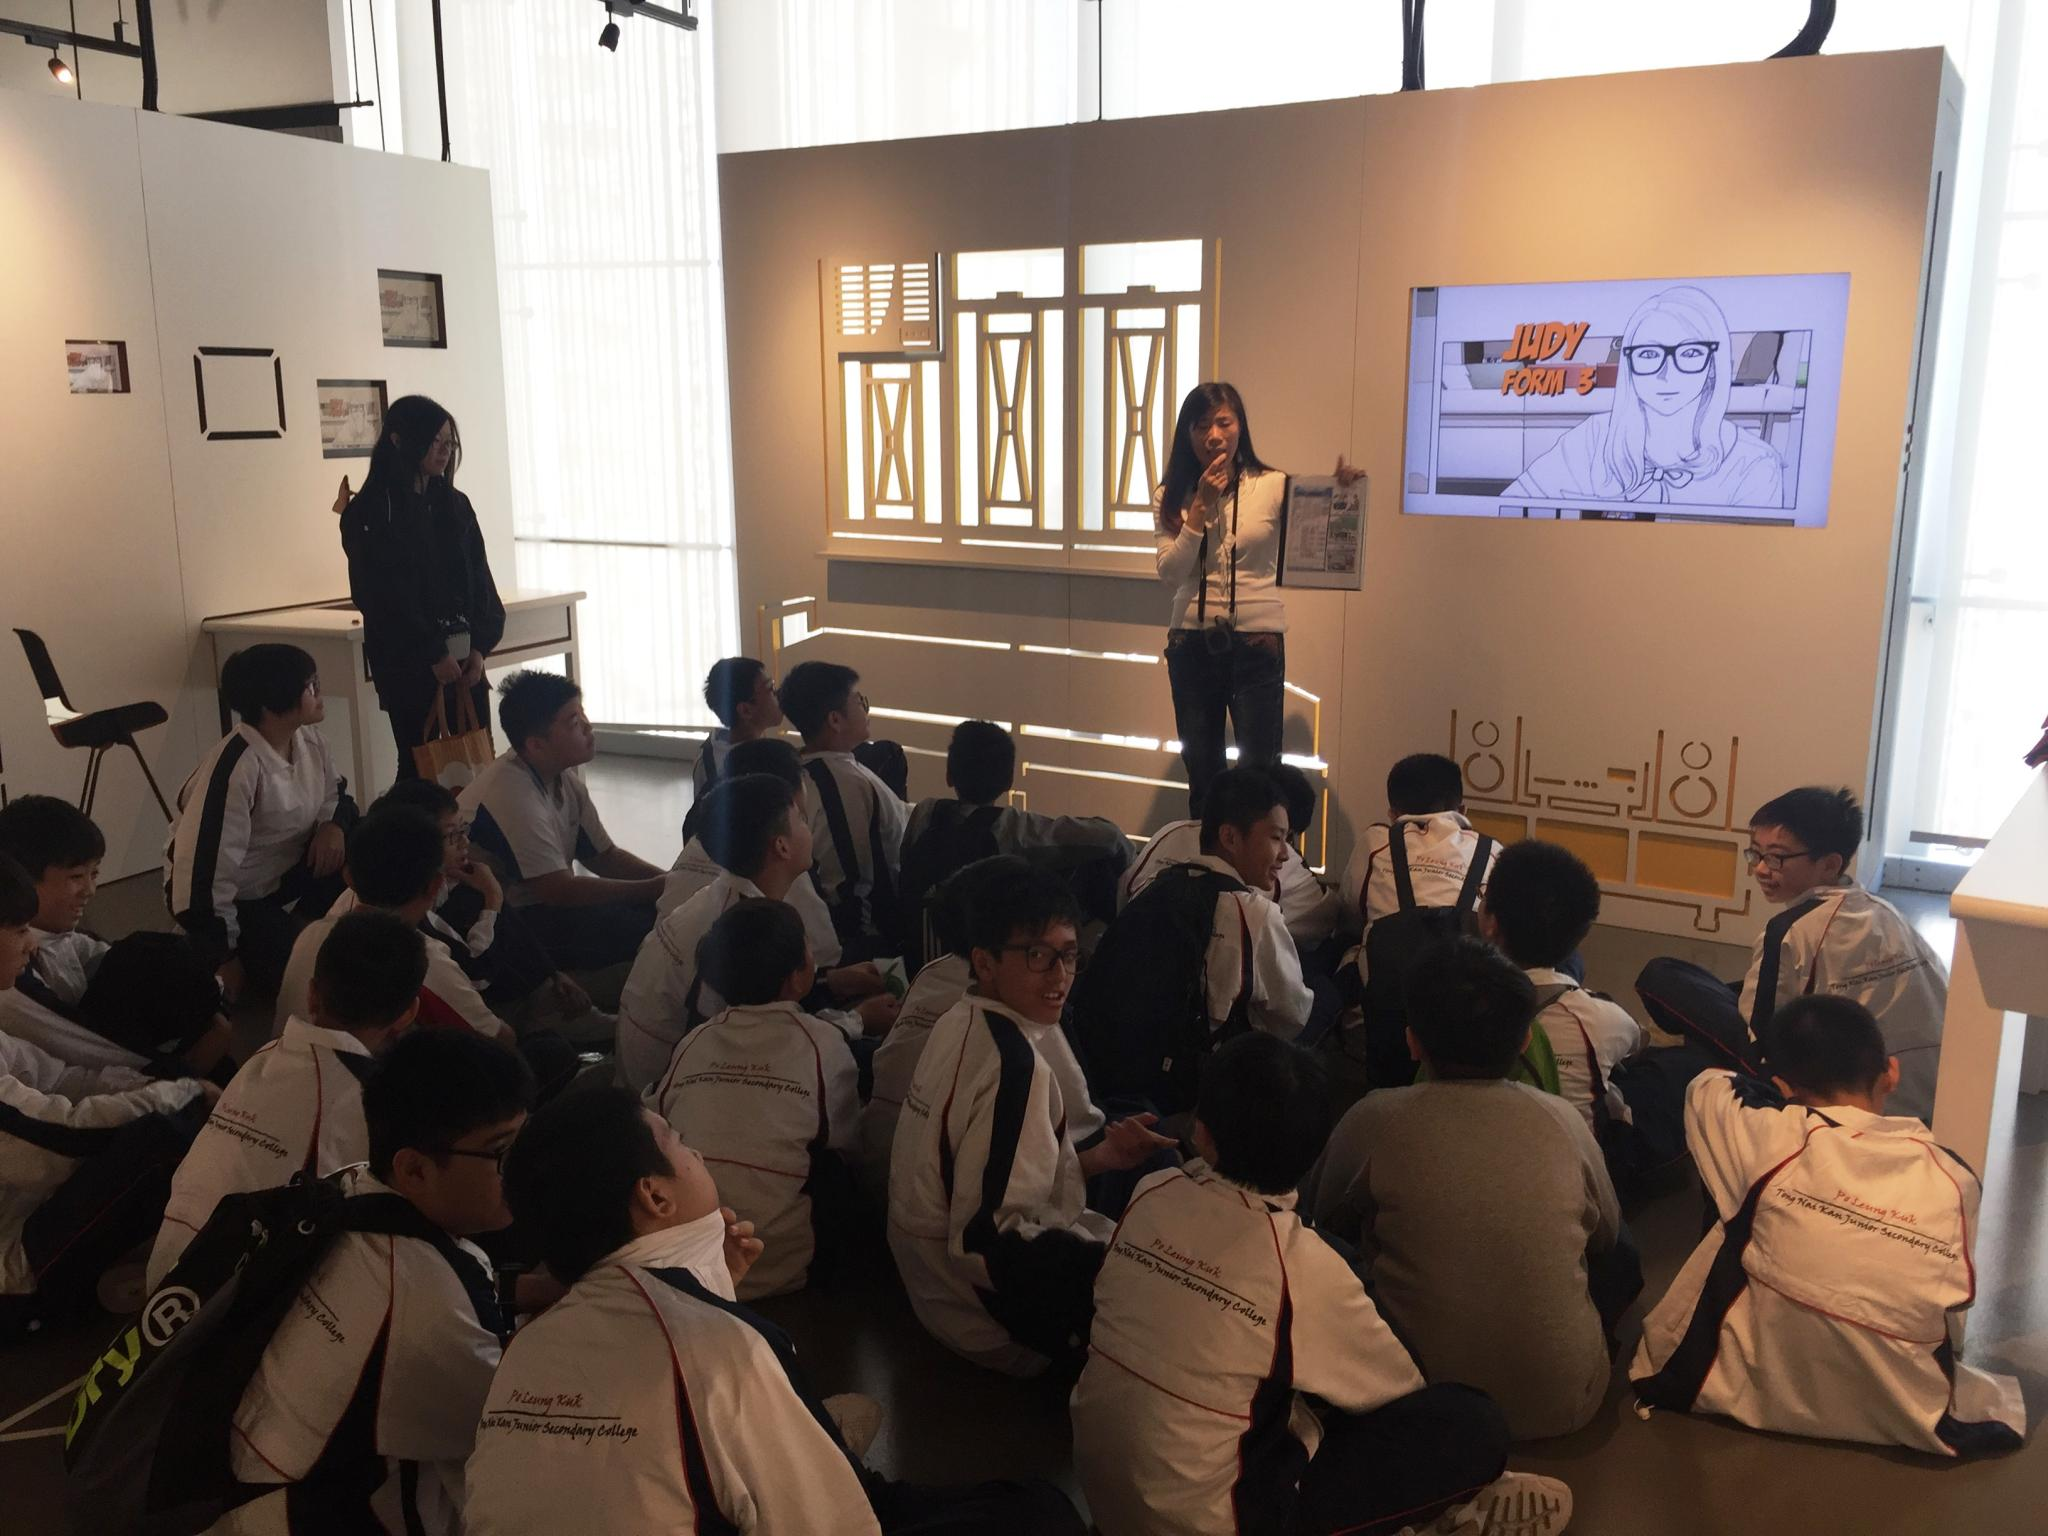 Through the interactive games, students were able to learn more about their nation.